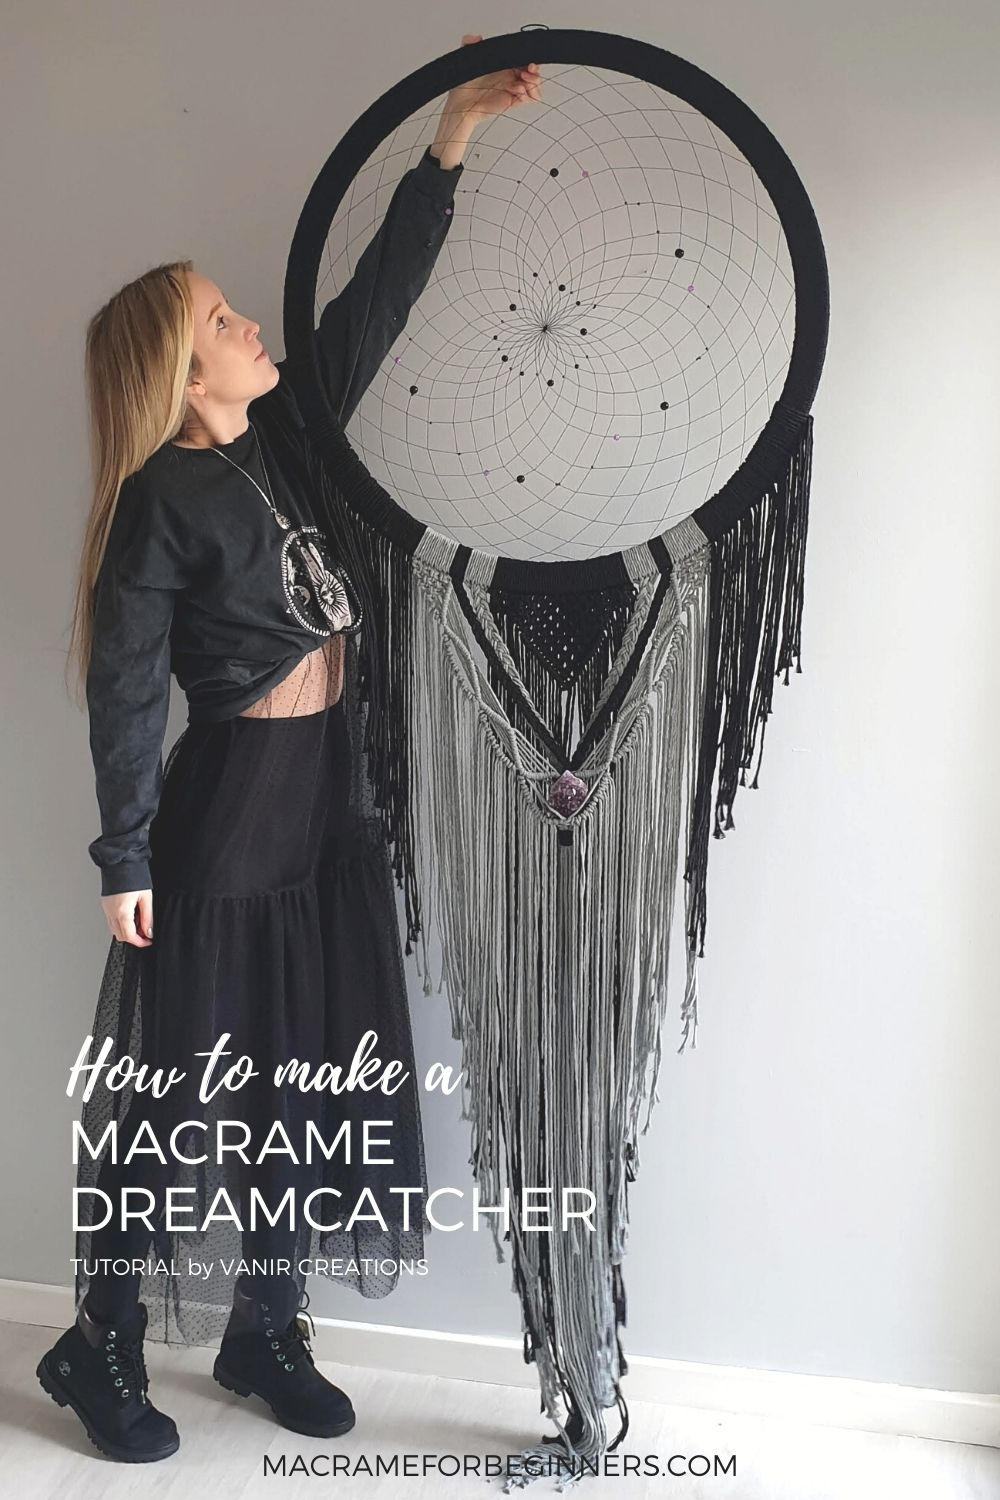 How to make a Macrame Mooncatcher by Vanir Creations